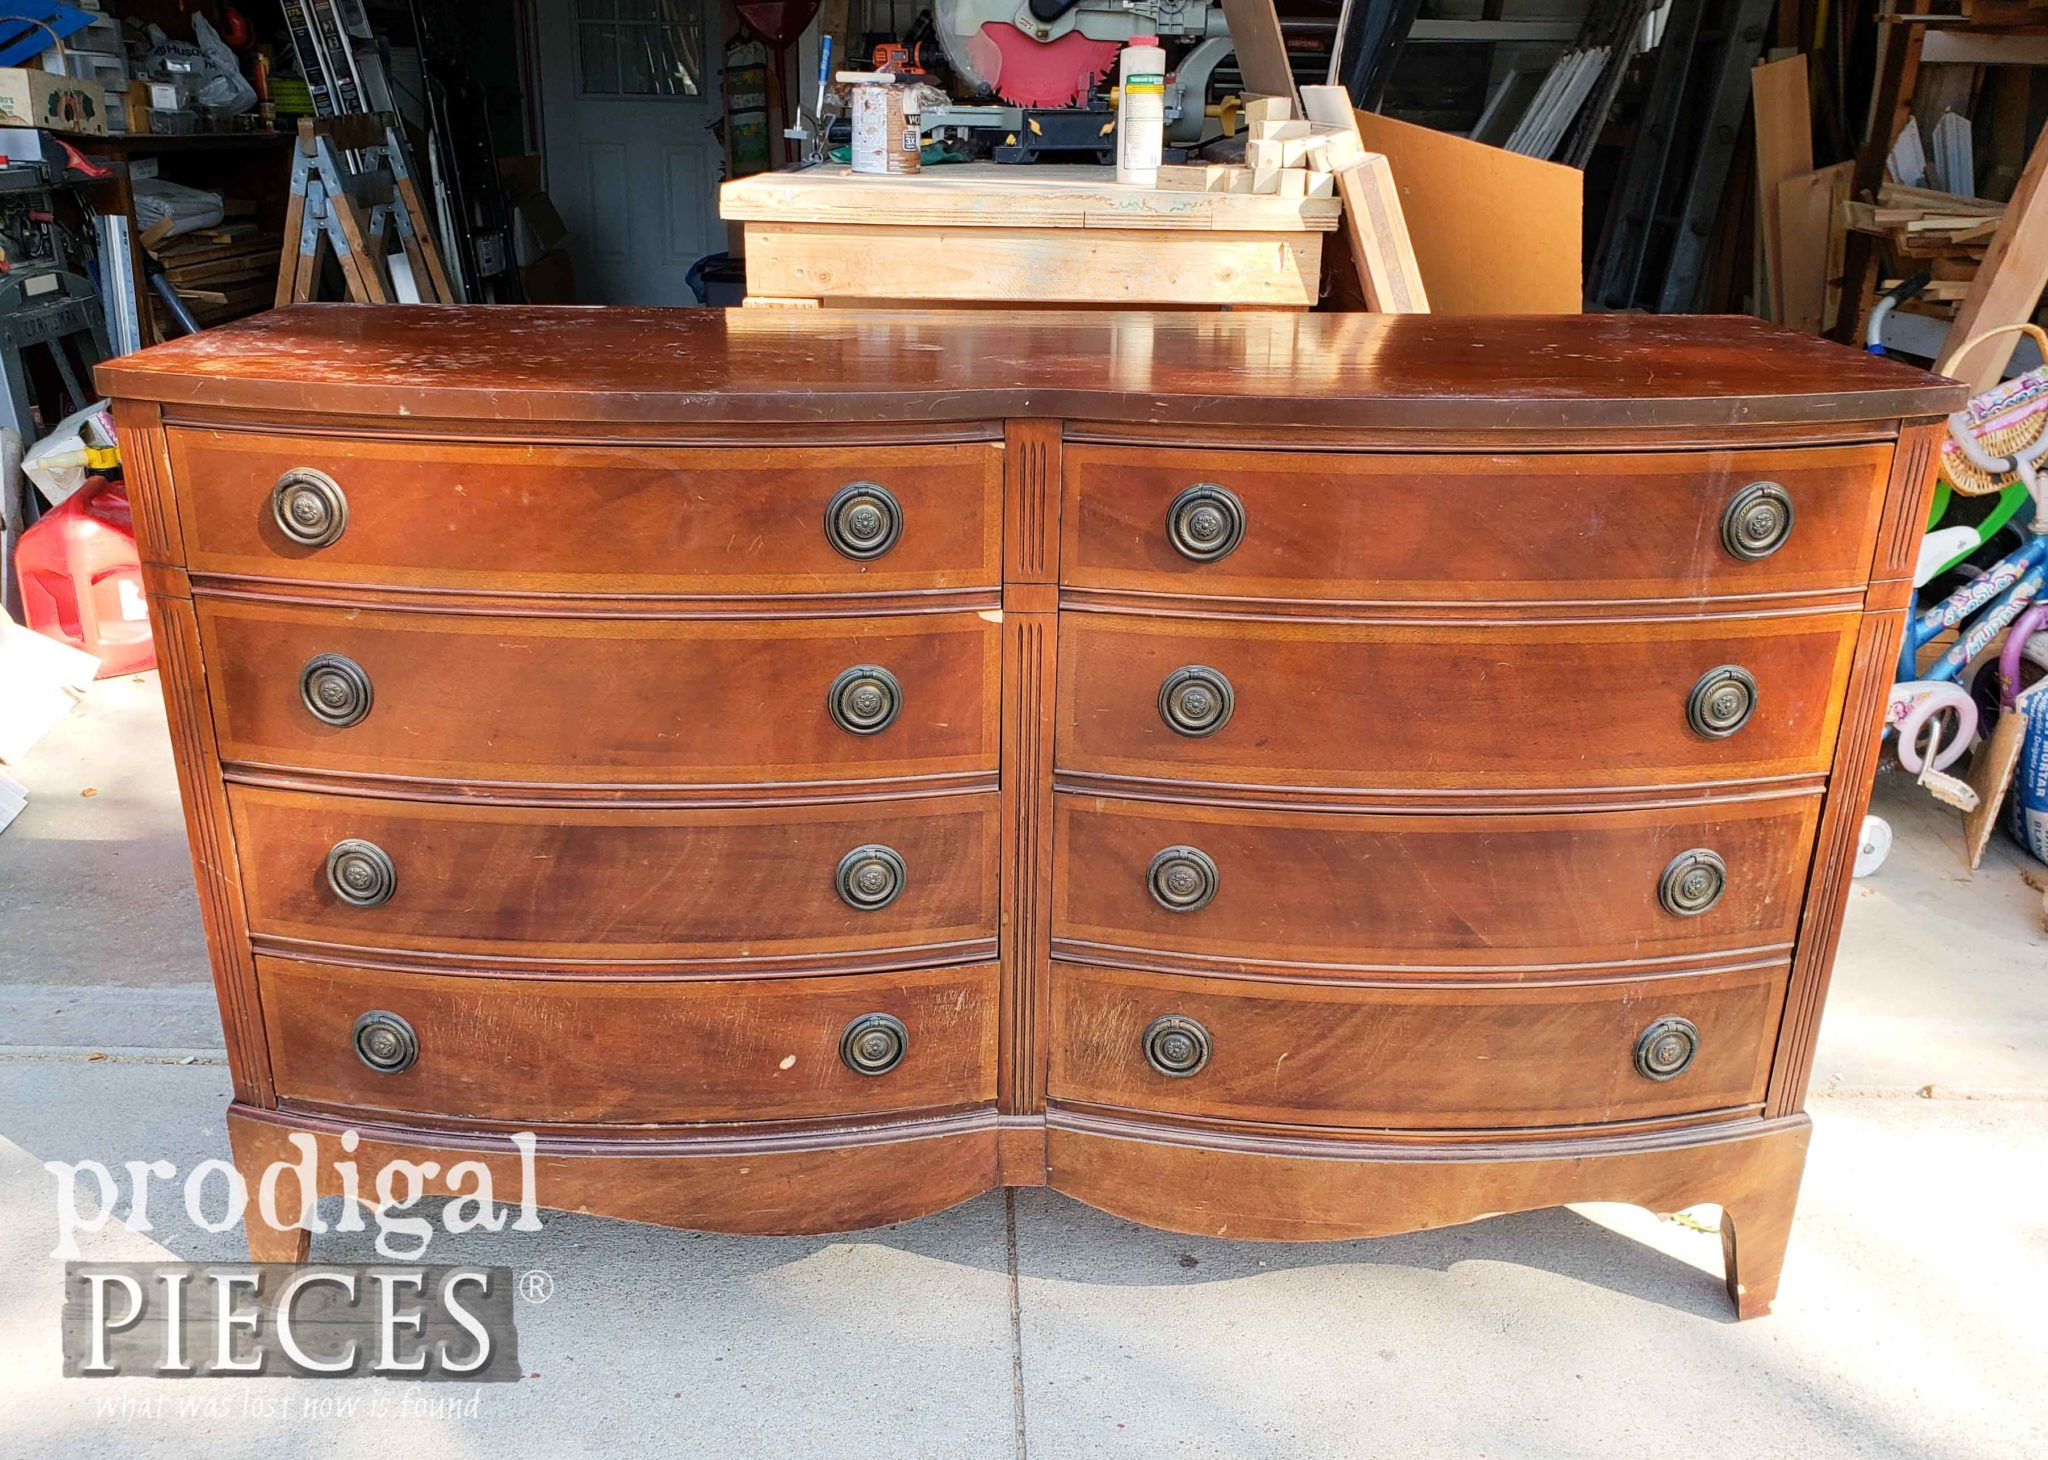 Vintage Dixie Dresser with Bow Front Before Makeover by Prodigal Pieces | prodigalpieces.com